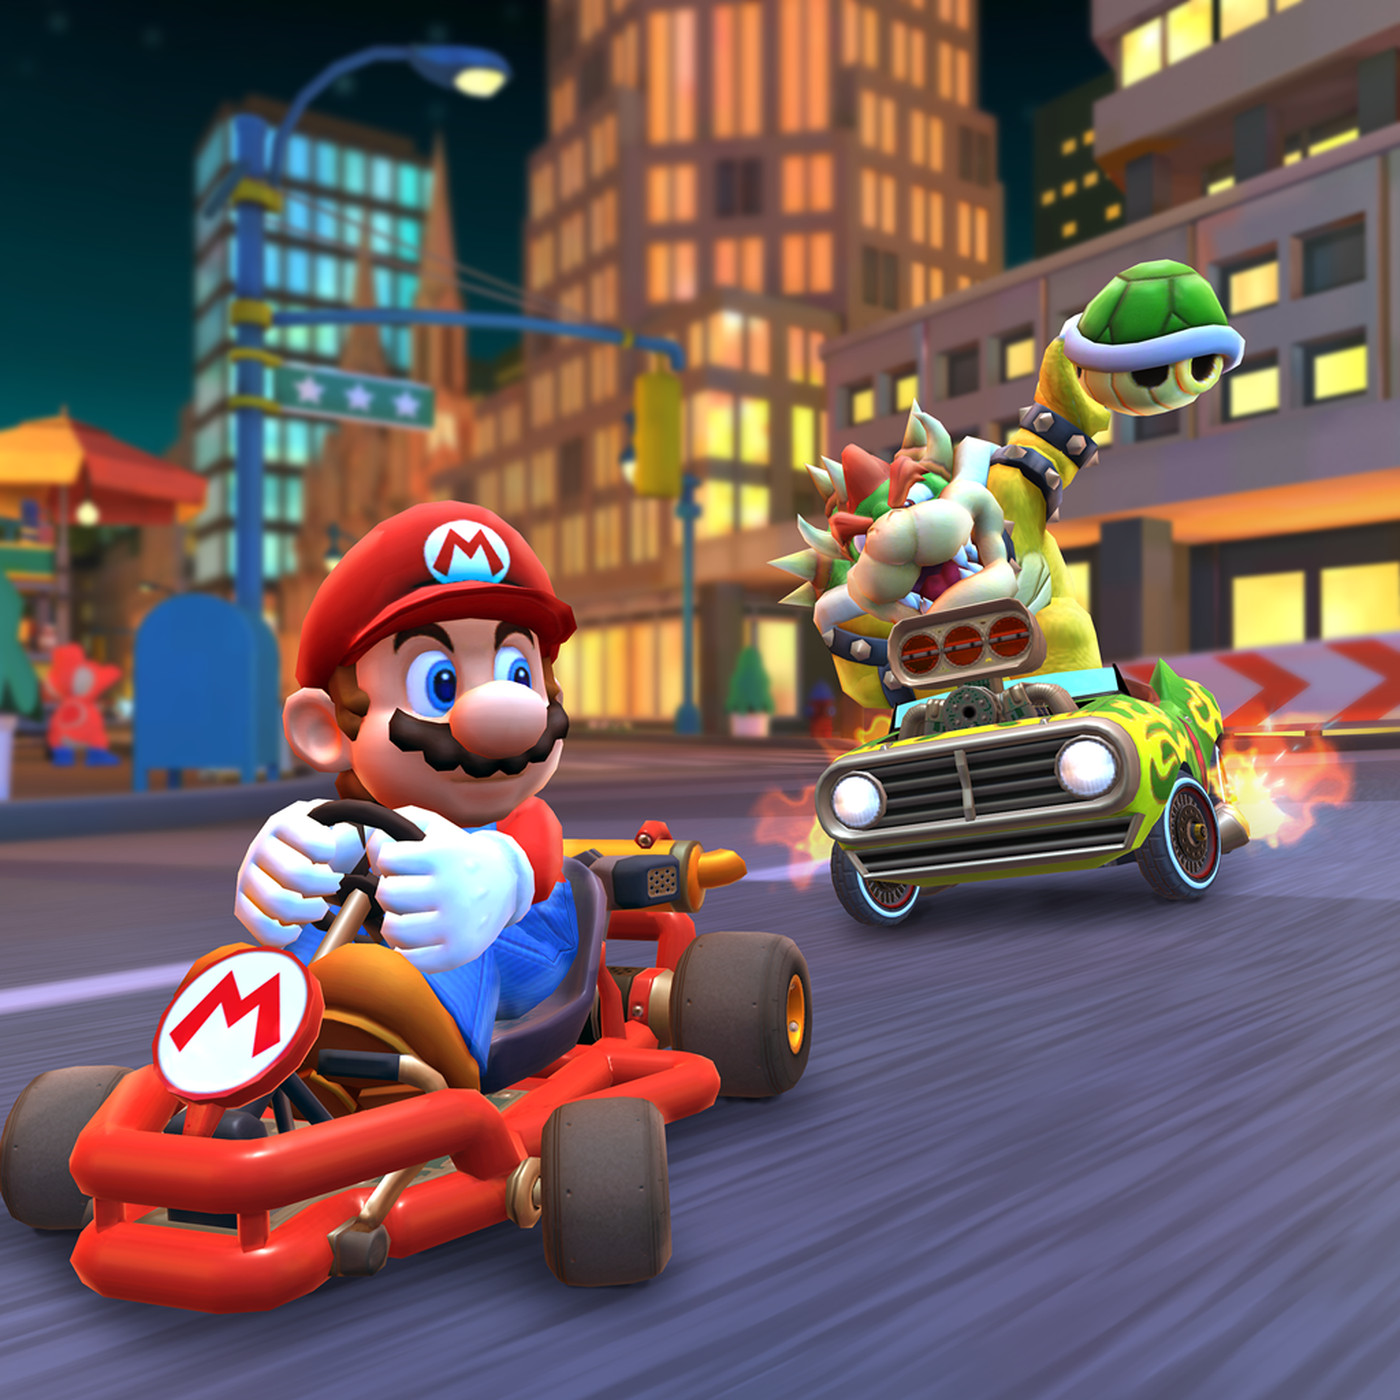 Auto Jump Roblox Download Most Downloaded Iphone Games Mario Kart Tour Tops Call Of Duty And Fortnite The Verge